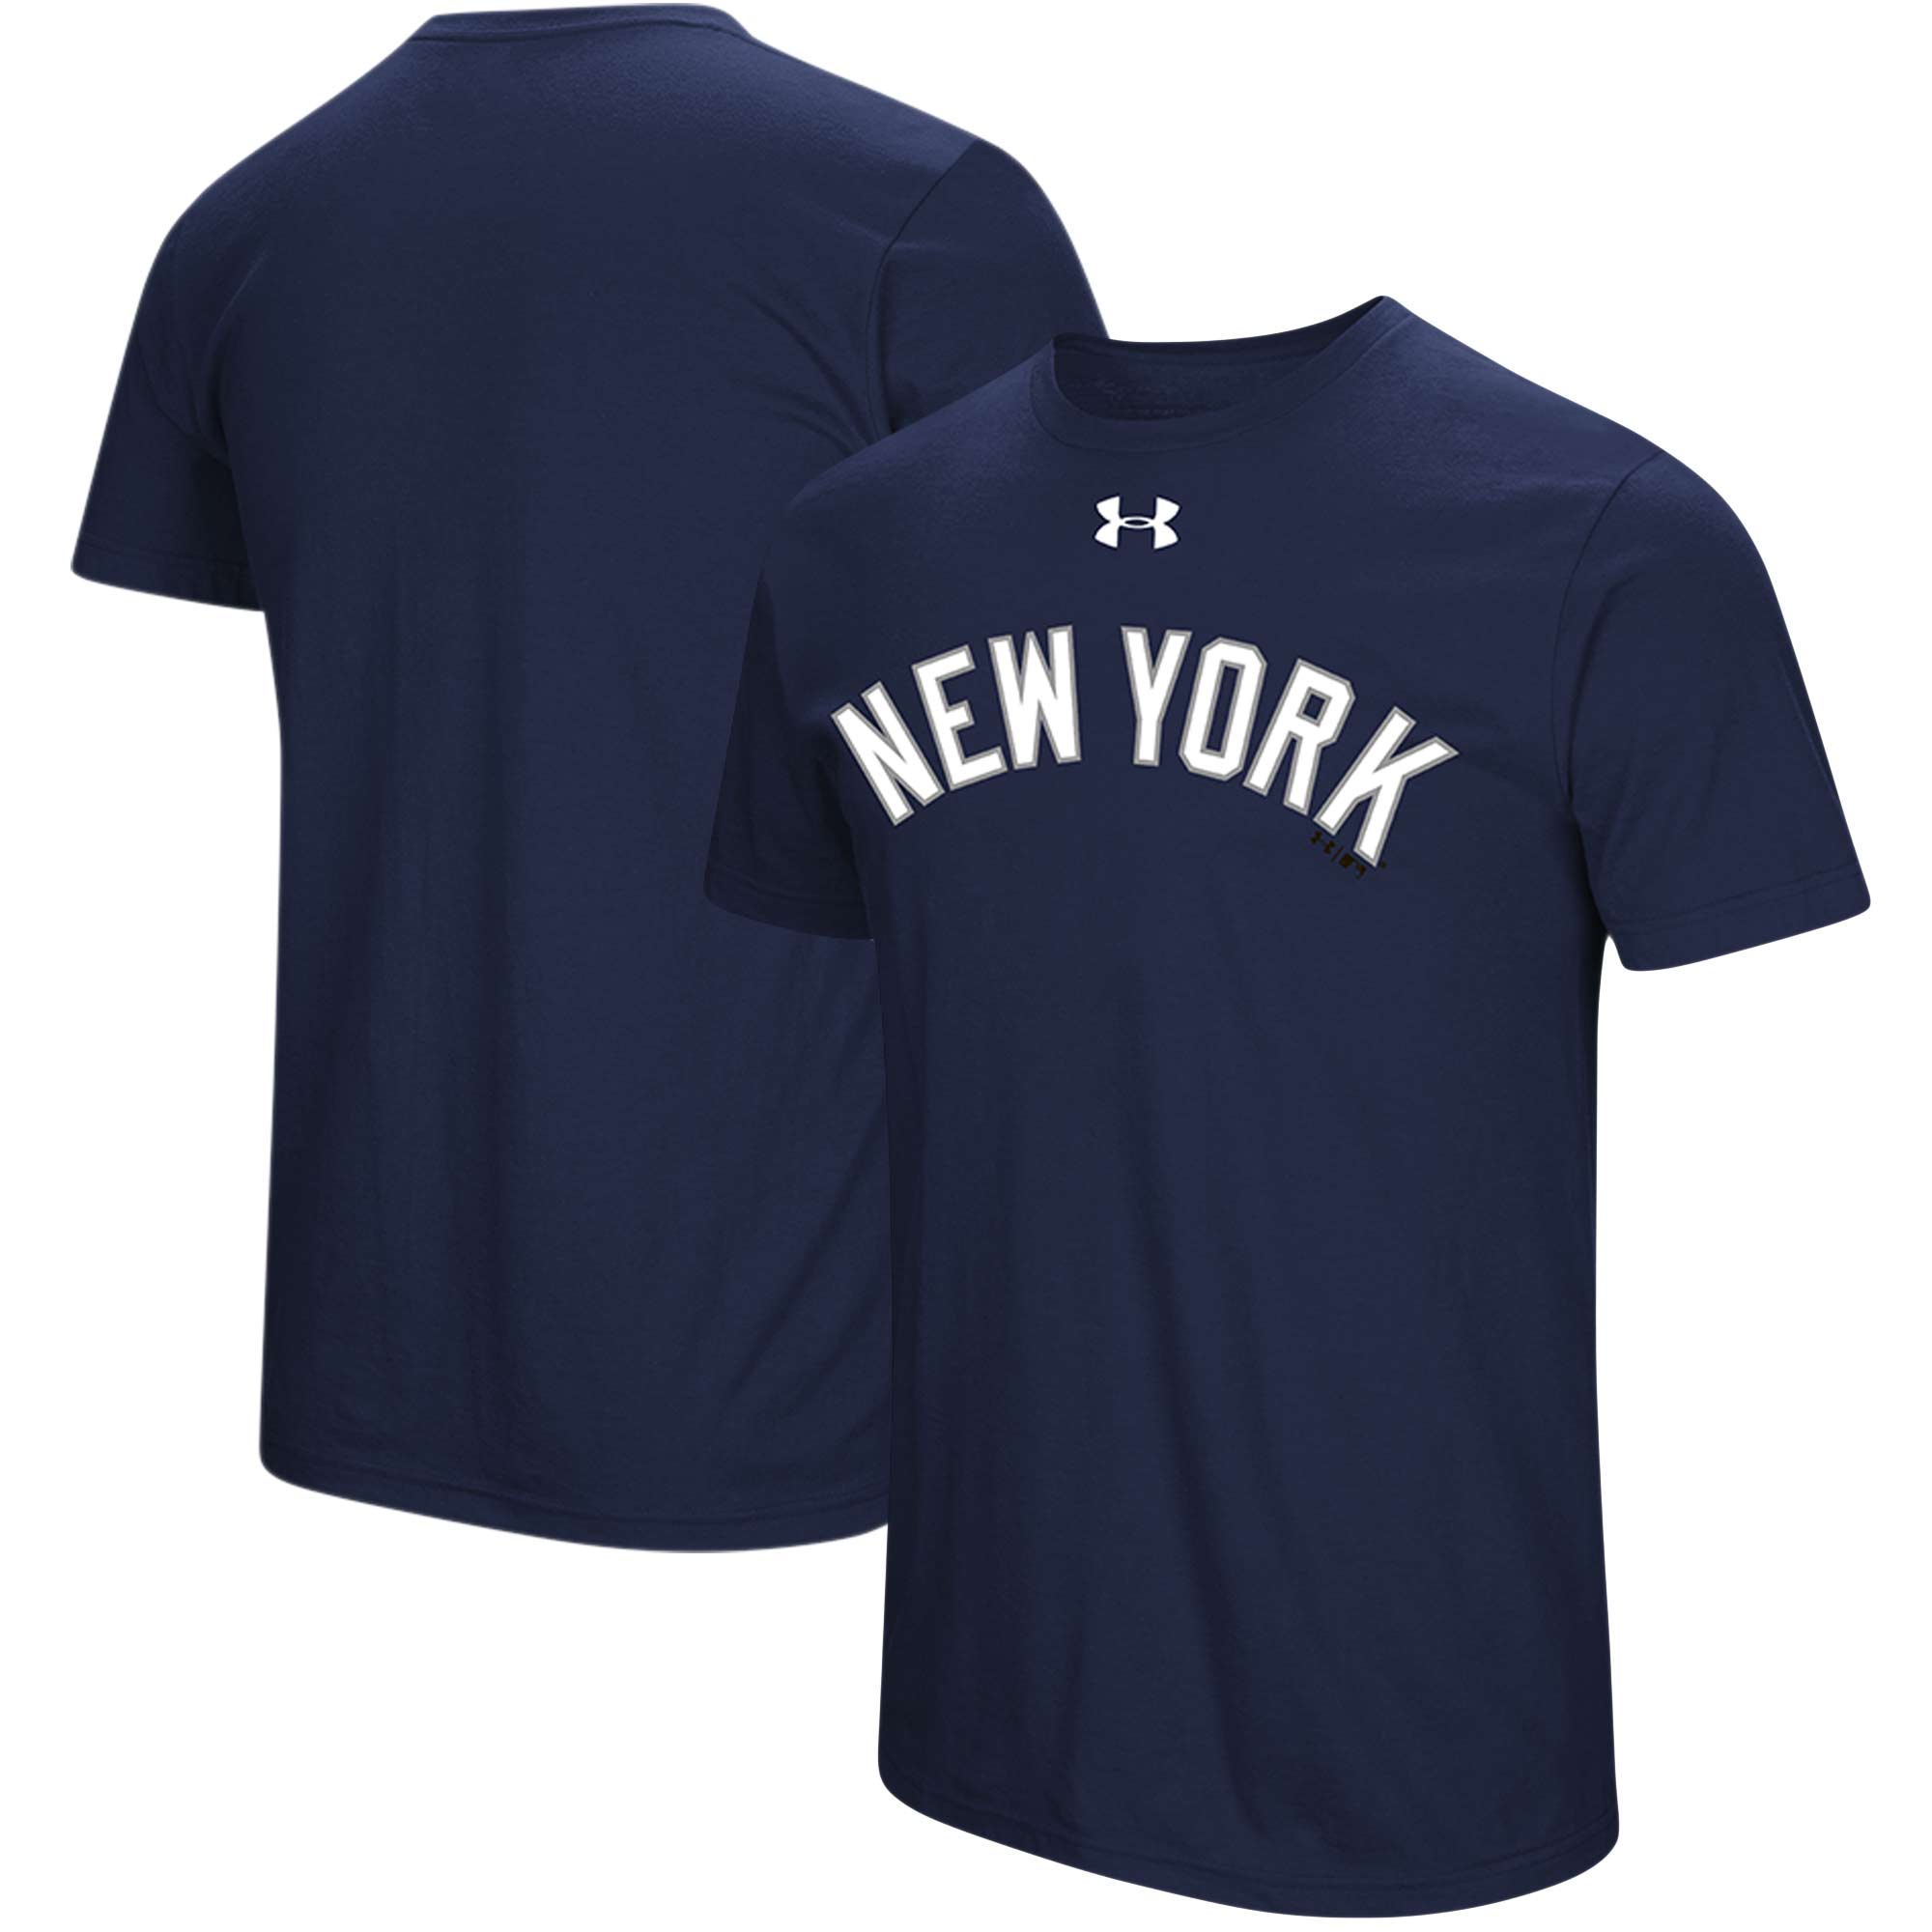 New York Yankees Under Armour Passion Road Team Font T-Shirt - Navy